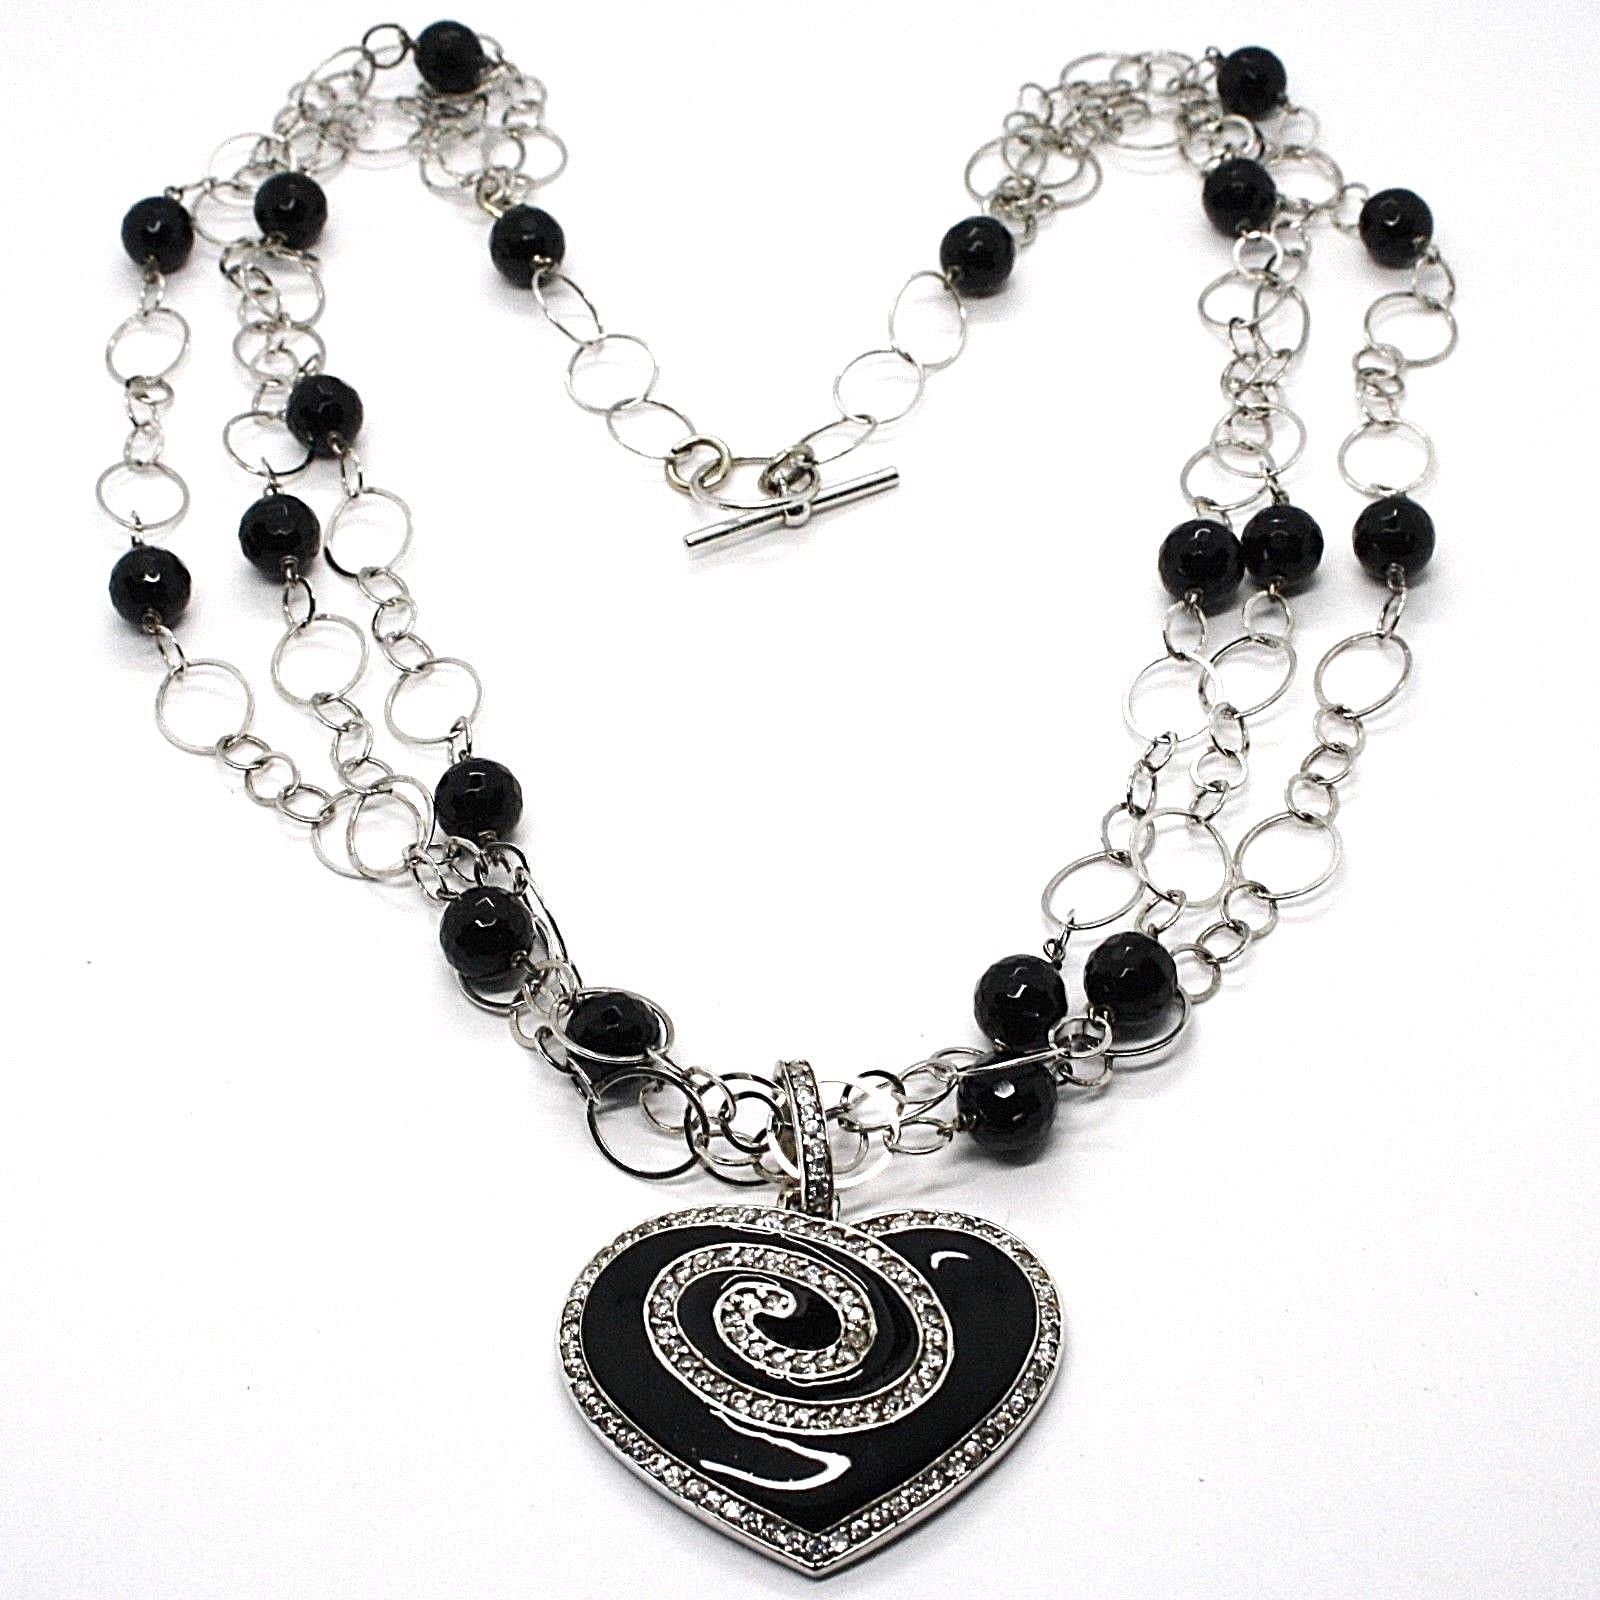 Silver necklace 925, Onyx Black Round, Heart Pendant, Chain three files